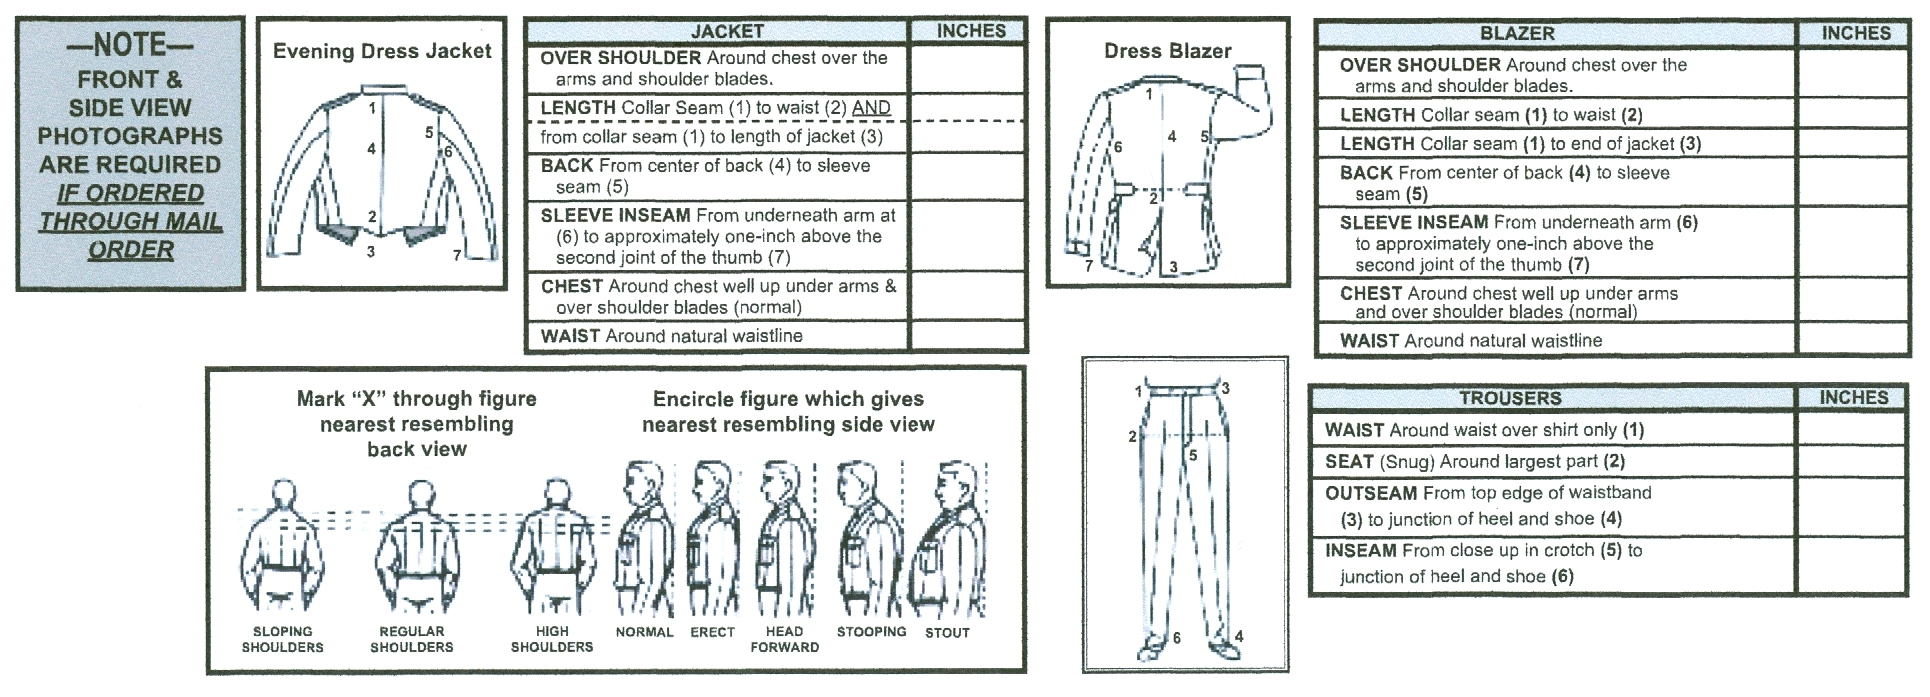 Uniform Measurement Guide